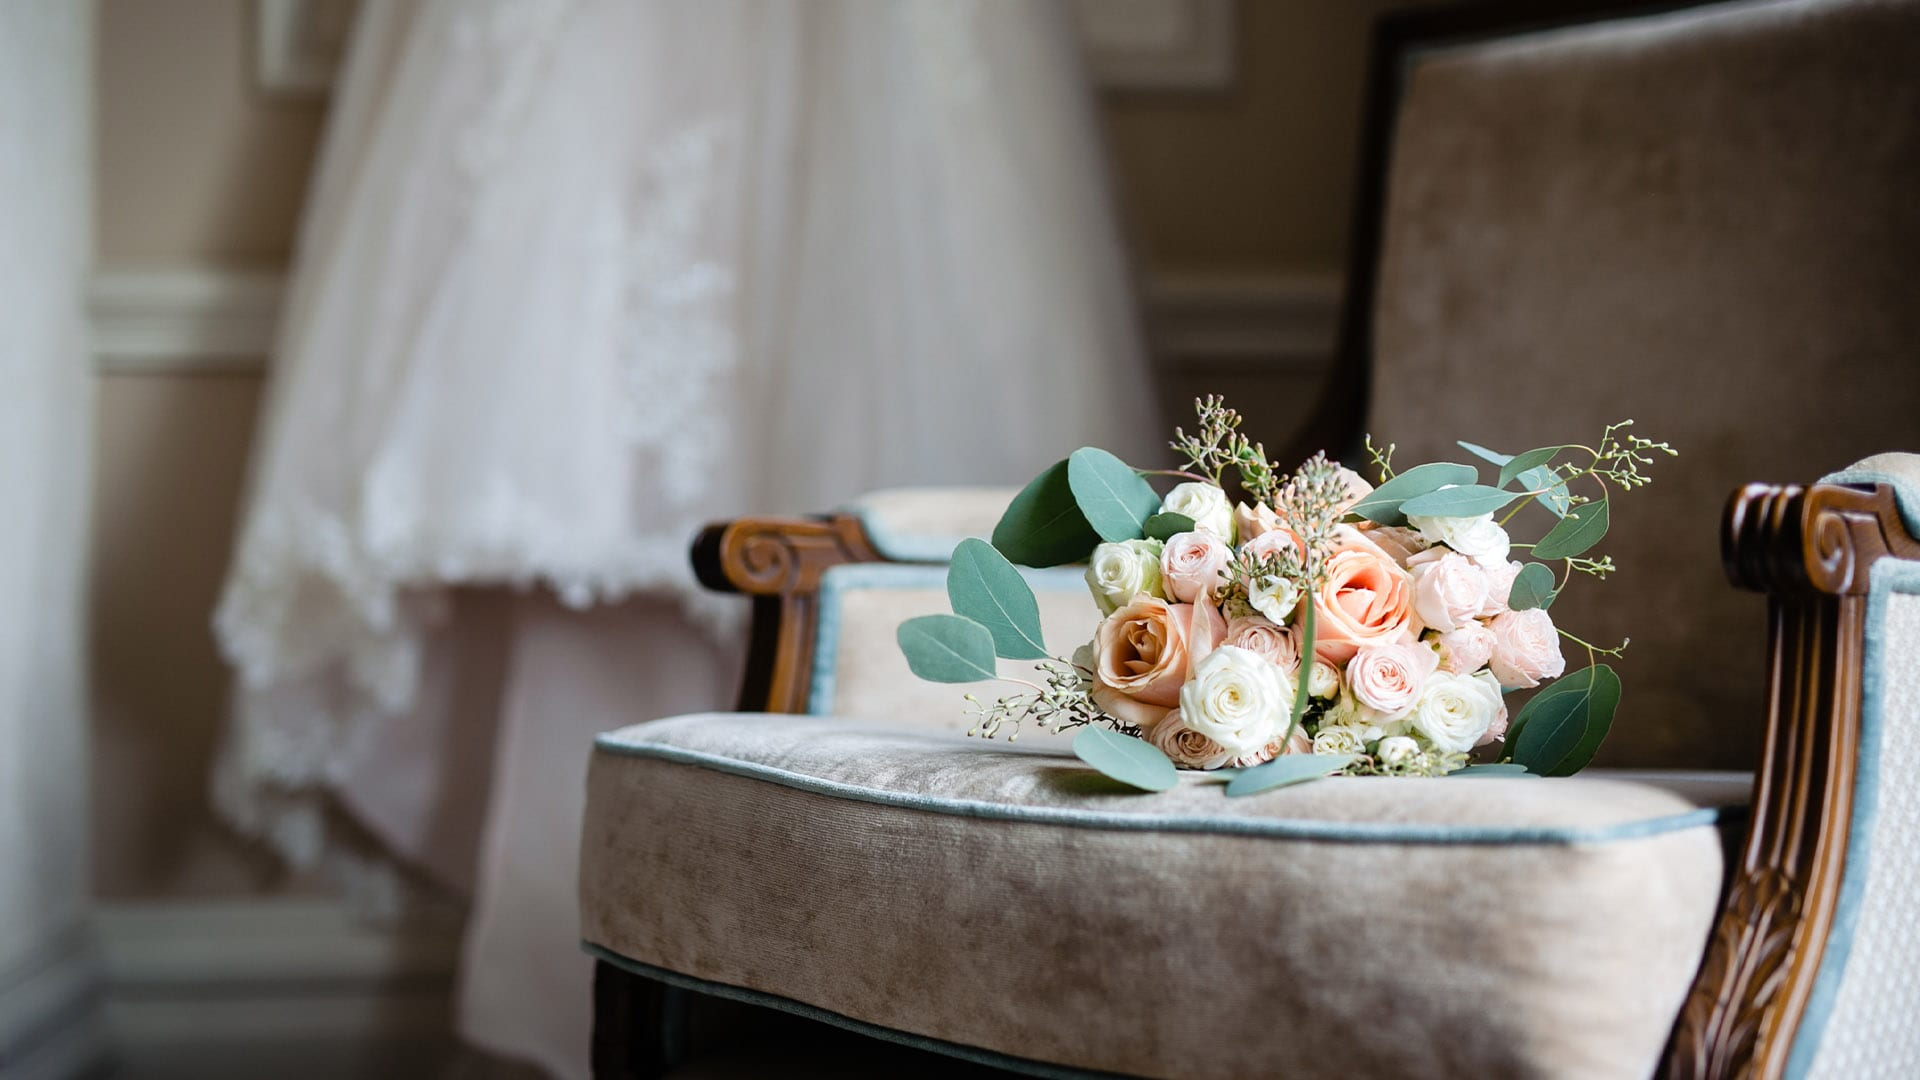 Wedding Bouquet On Chair - Wedding Photography Essex